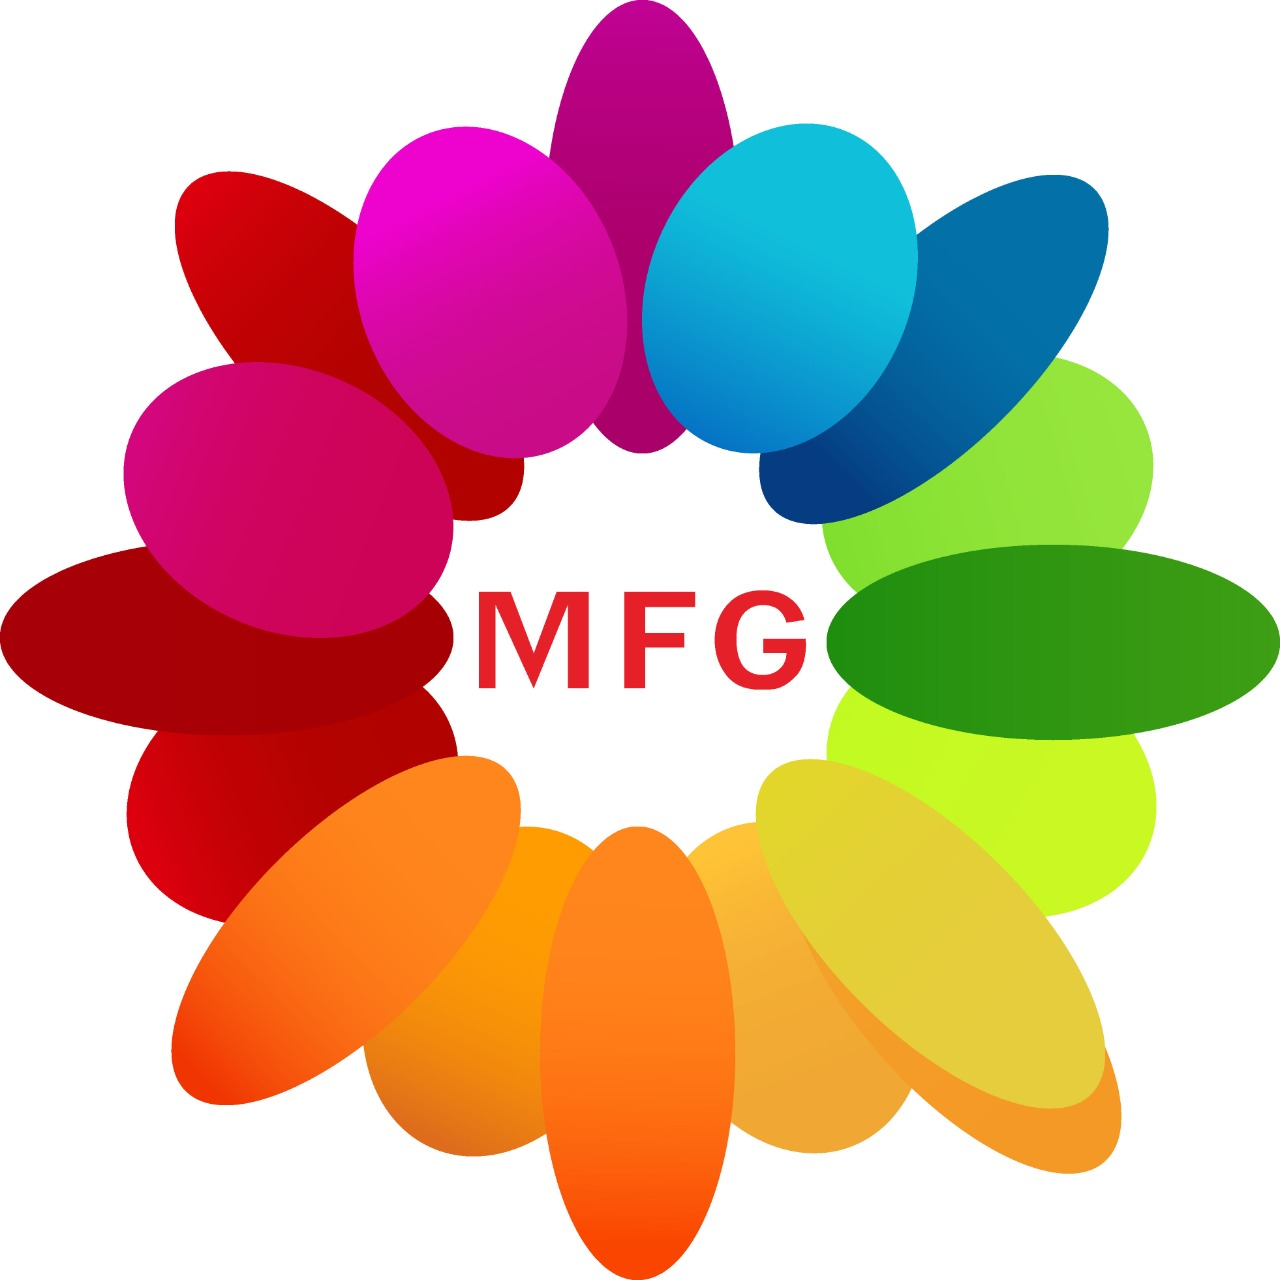 Bunch of 40 red carnation